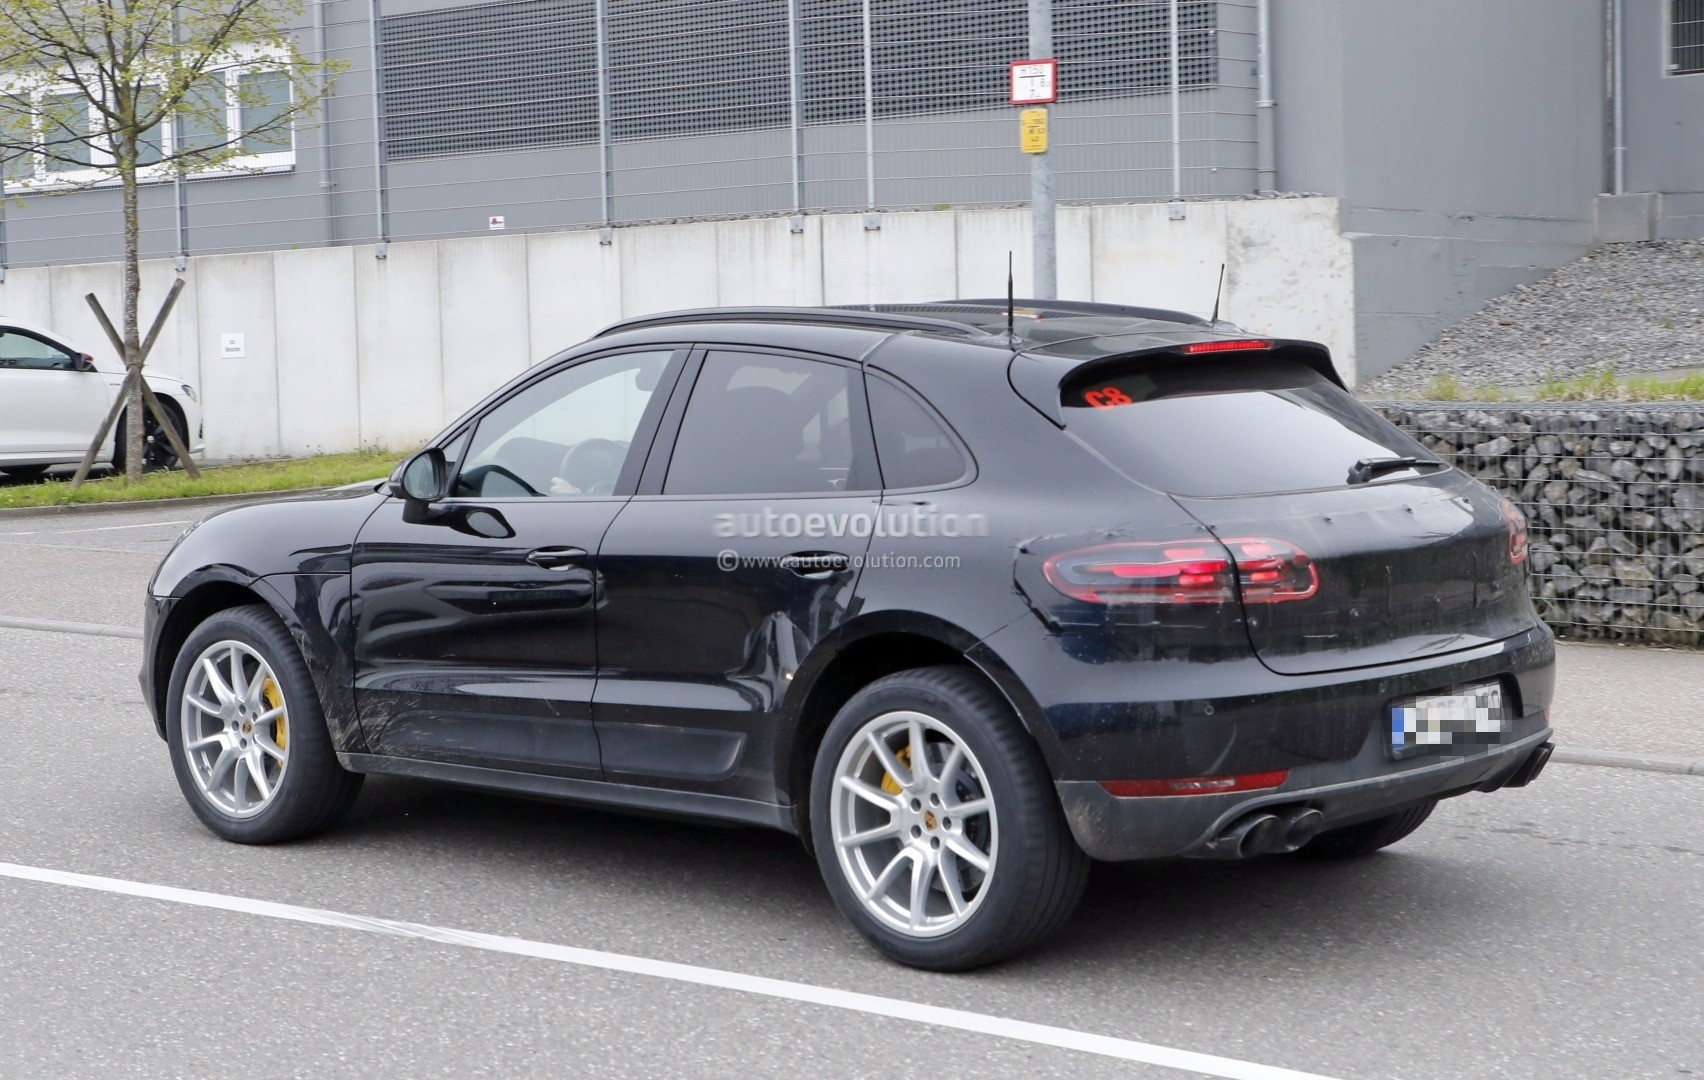 2019 Porsche Macan Facelift Getting Hotter But Porsche Denies Gt